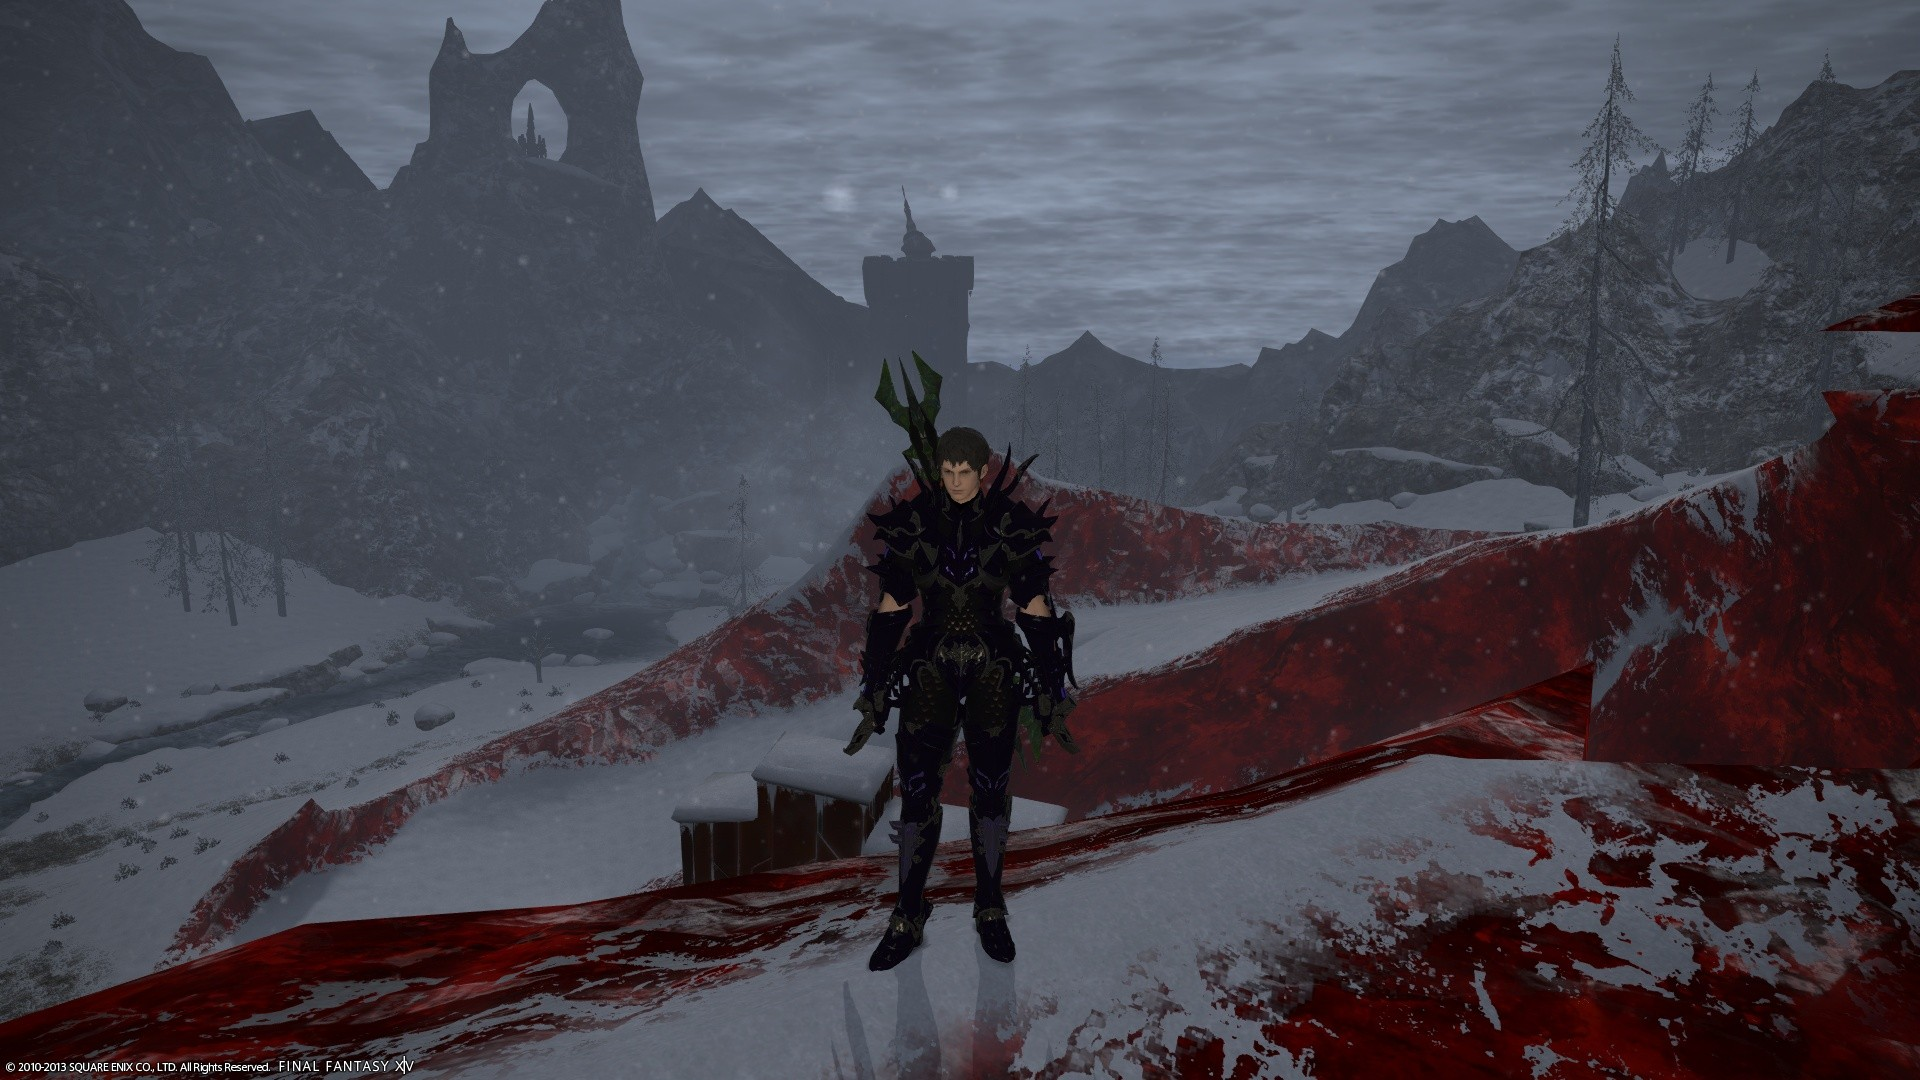 Final Fantasy XIV: Heavensward - Brr its cold out here